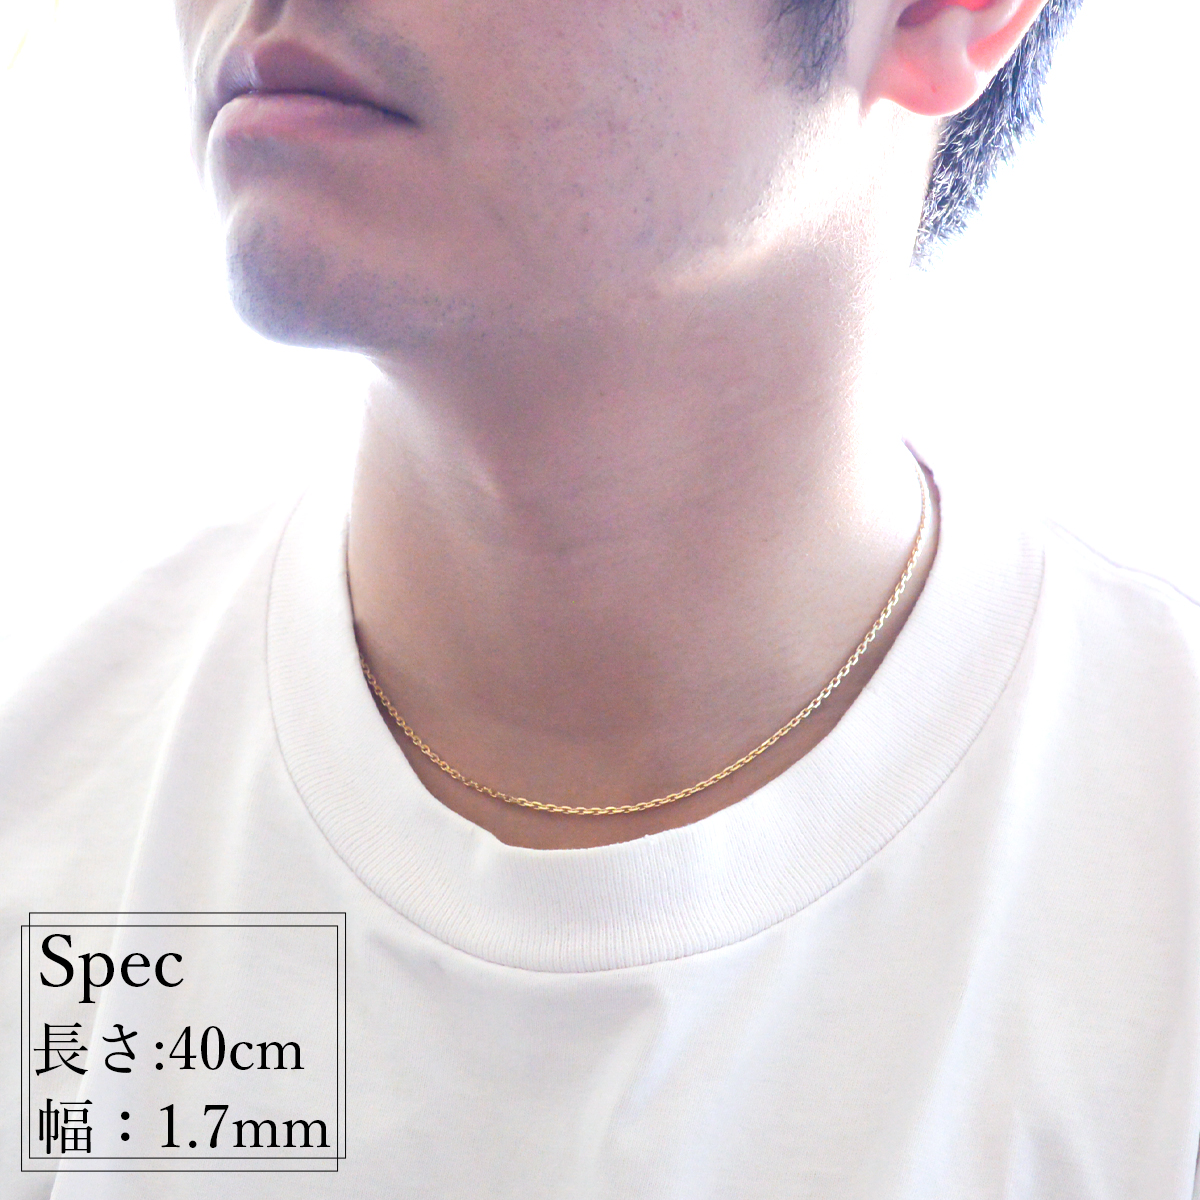 k18ネックレス K18 イエローゴールド メンズ 男性 カットアズキチェーン 幅1.7mm チェーン 40cm/ プレゼント ギフト gold necklace ach1661c40